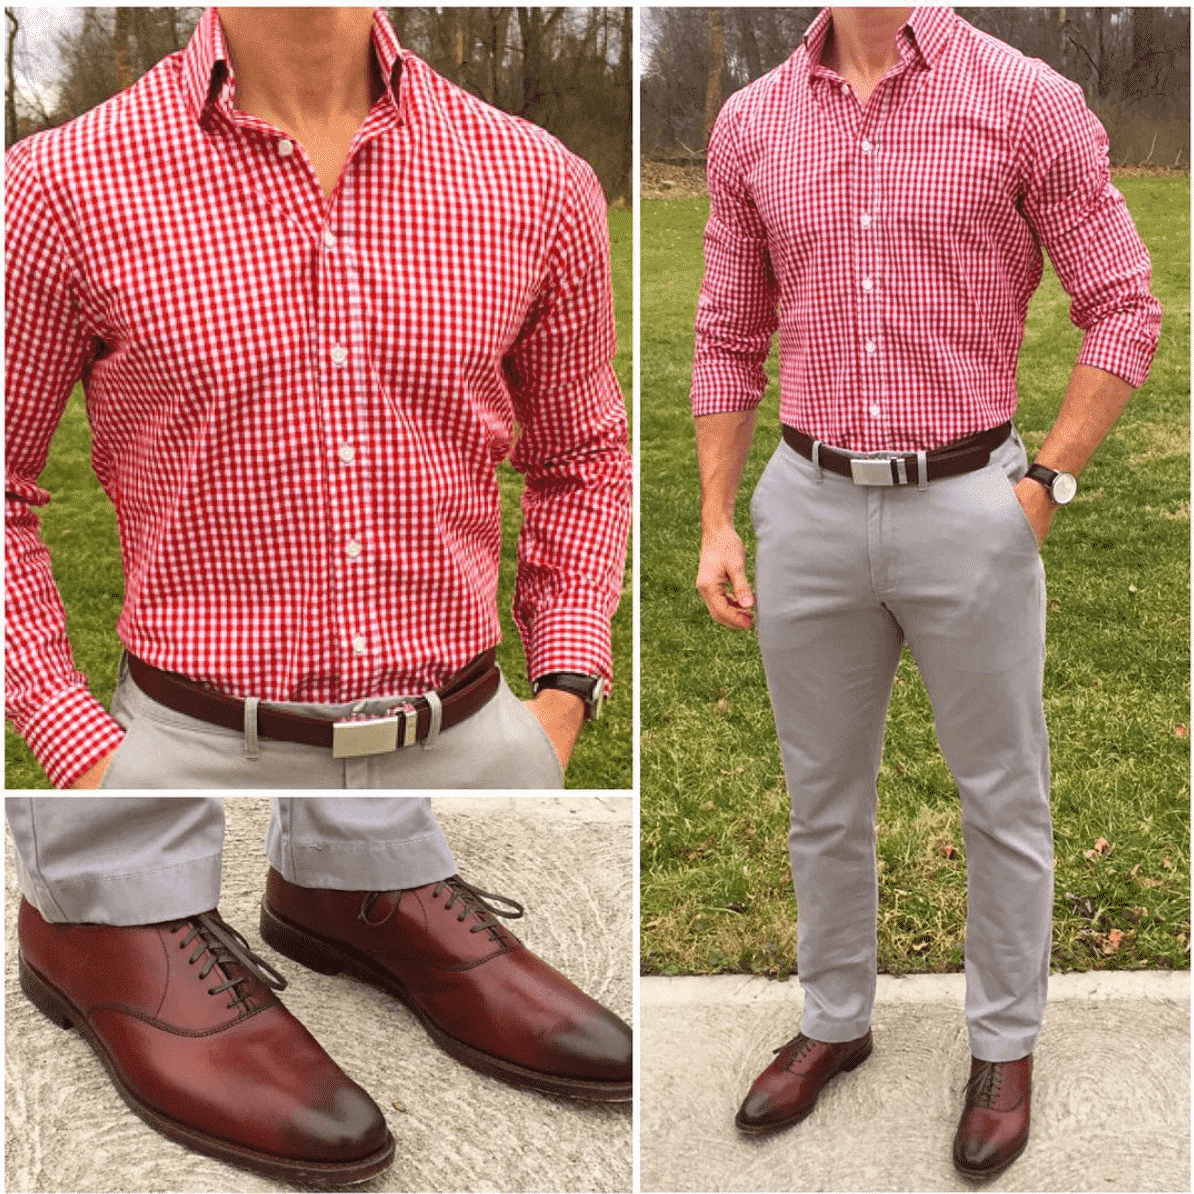 Menu0026#39;s Business Casual Outfits-27 Ideas to Dress Business Casual